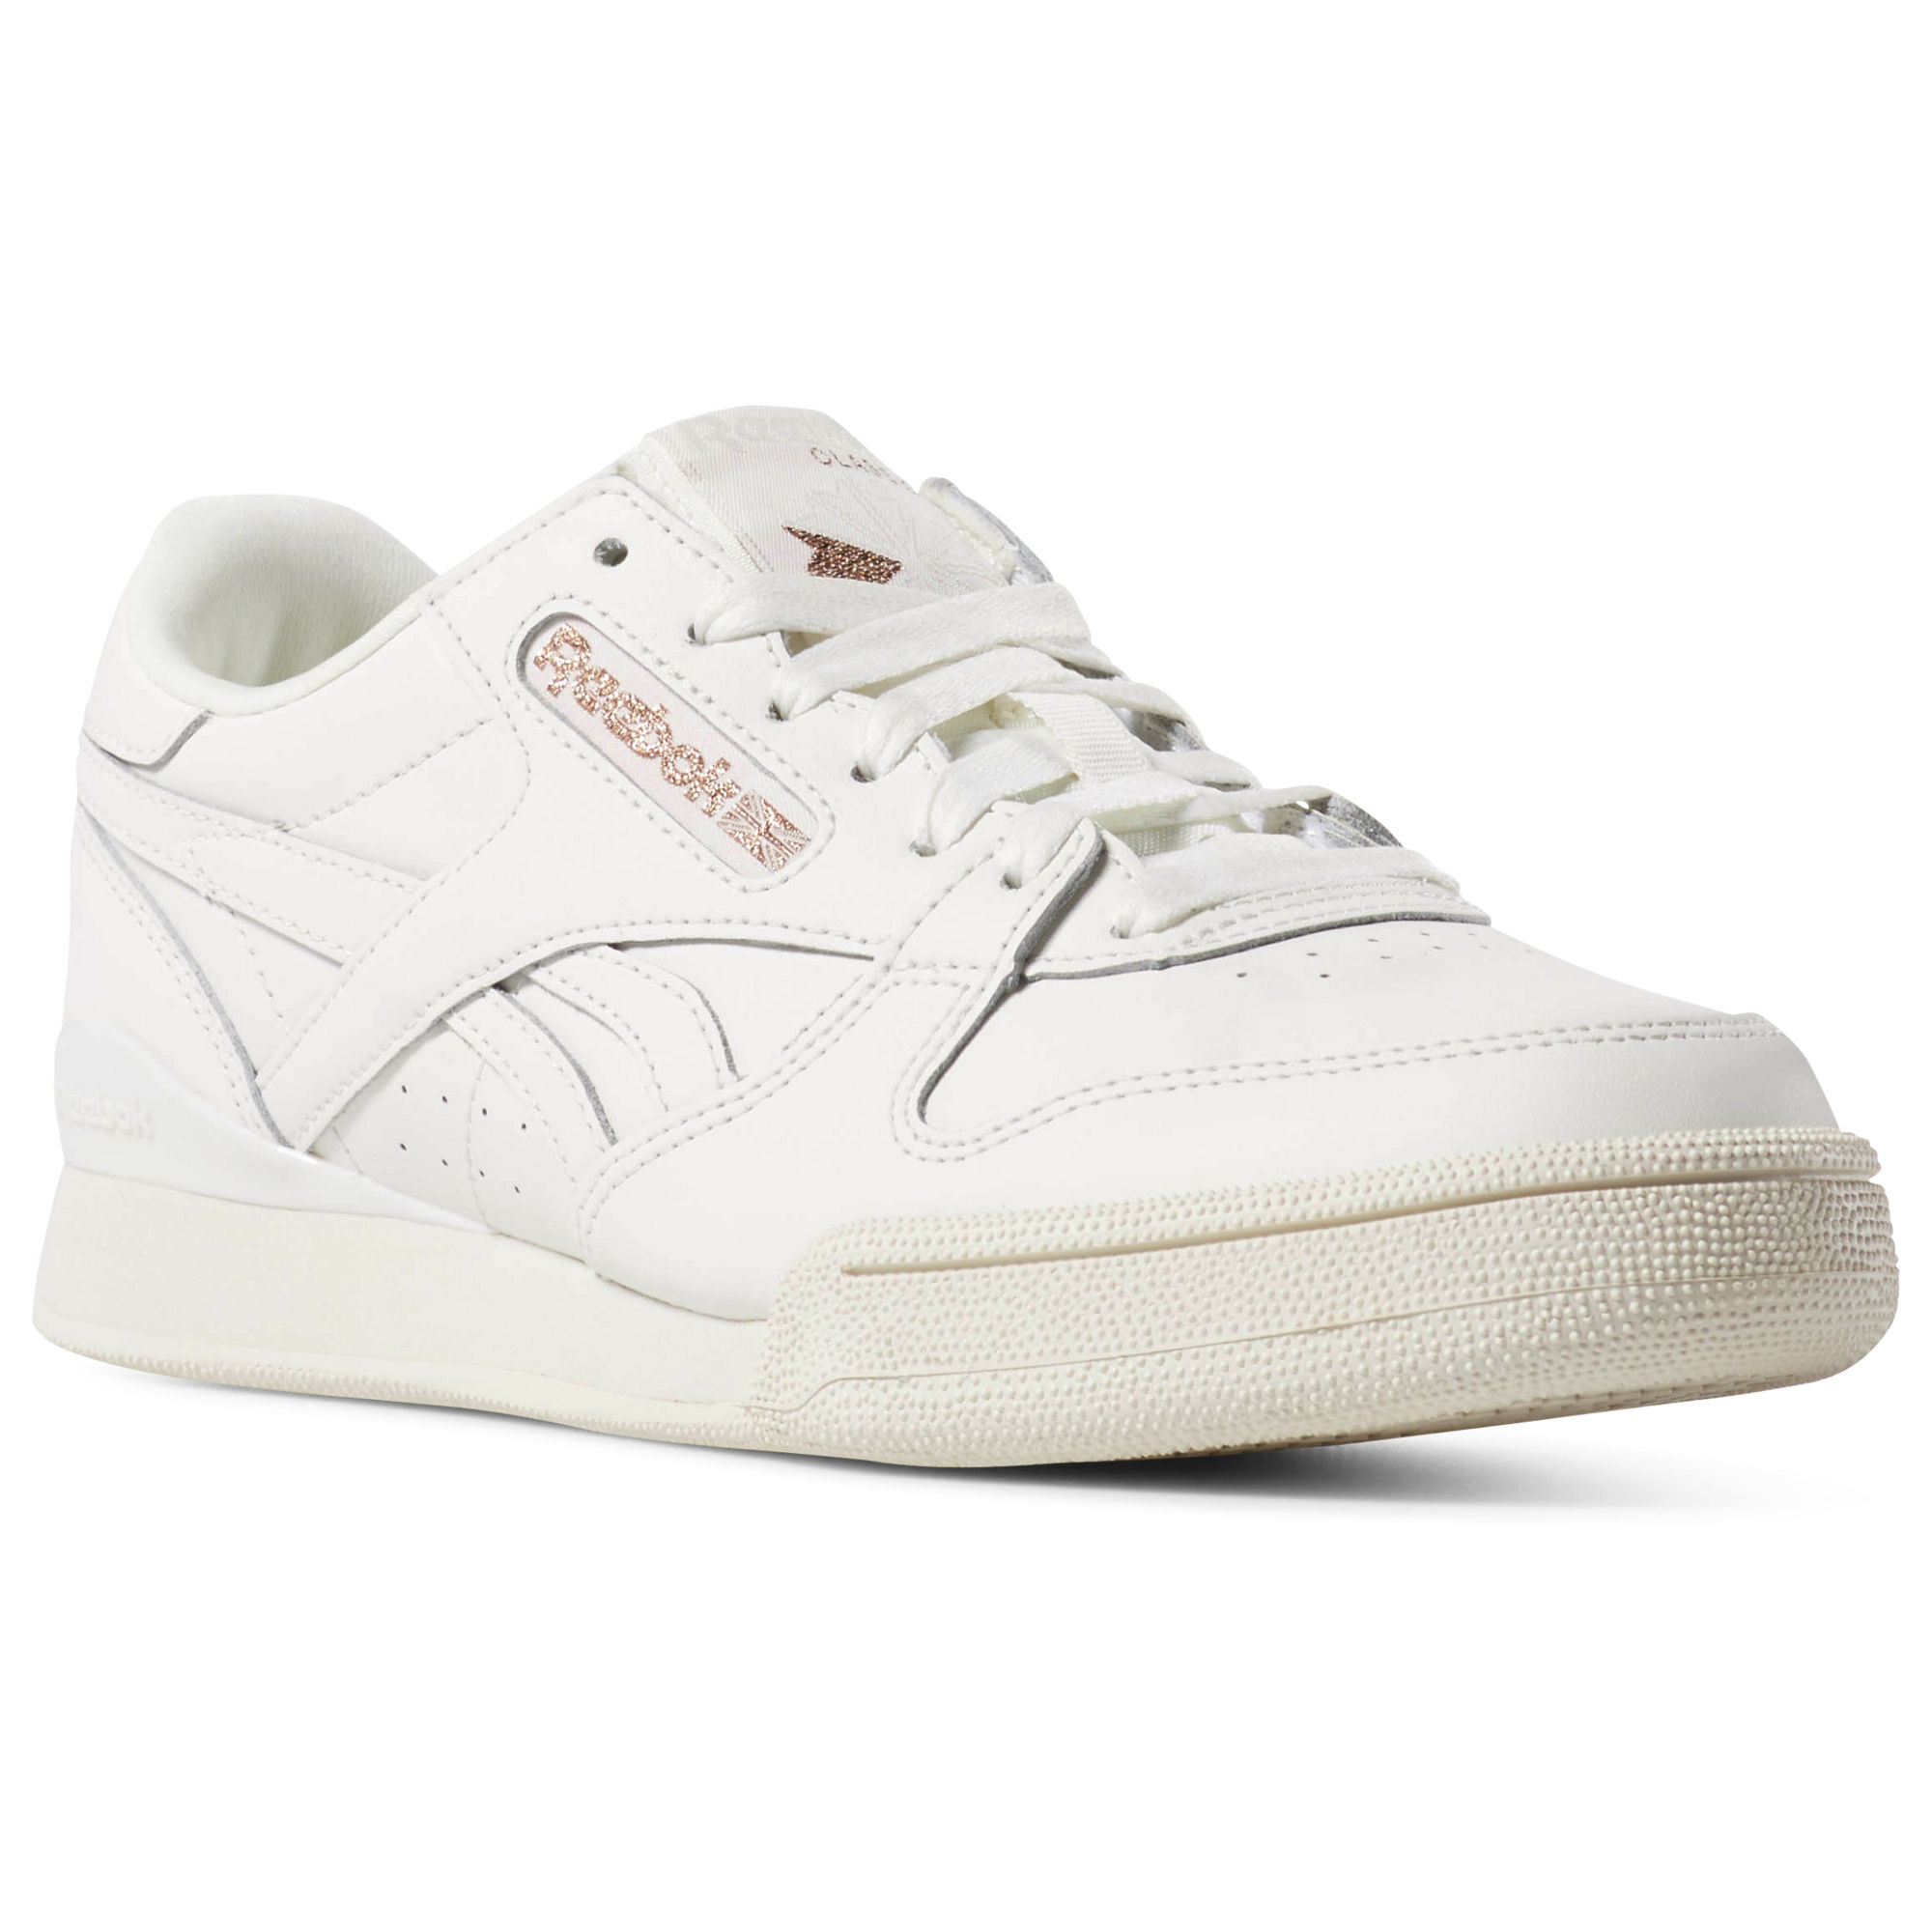 Reebok PHASE 1 PRO Womens Rose Gold/White Sneakers (747NJZKR)